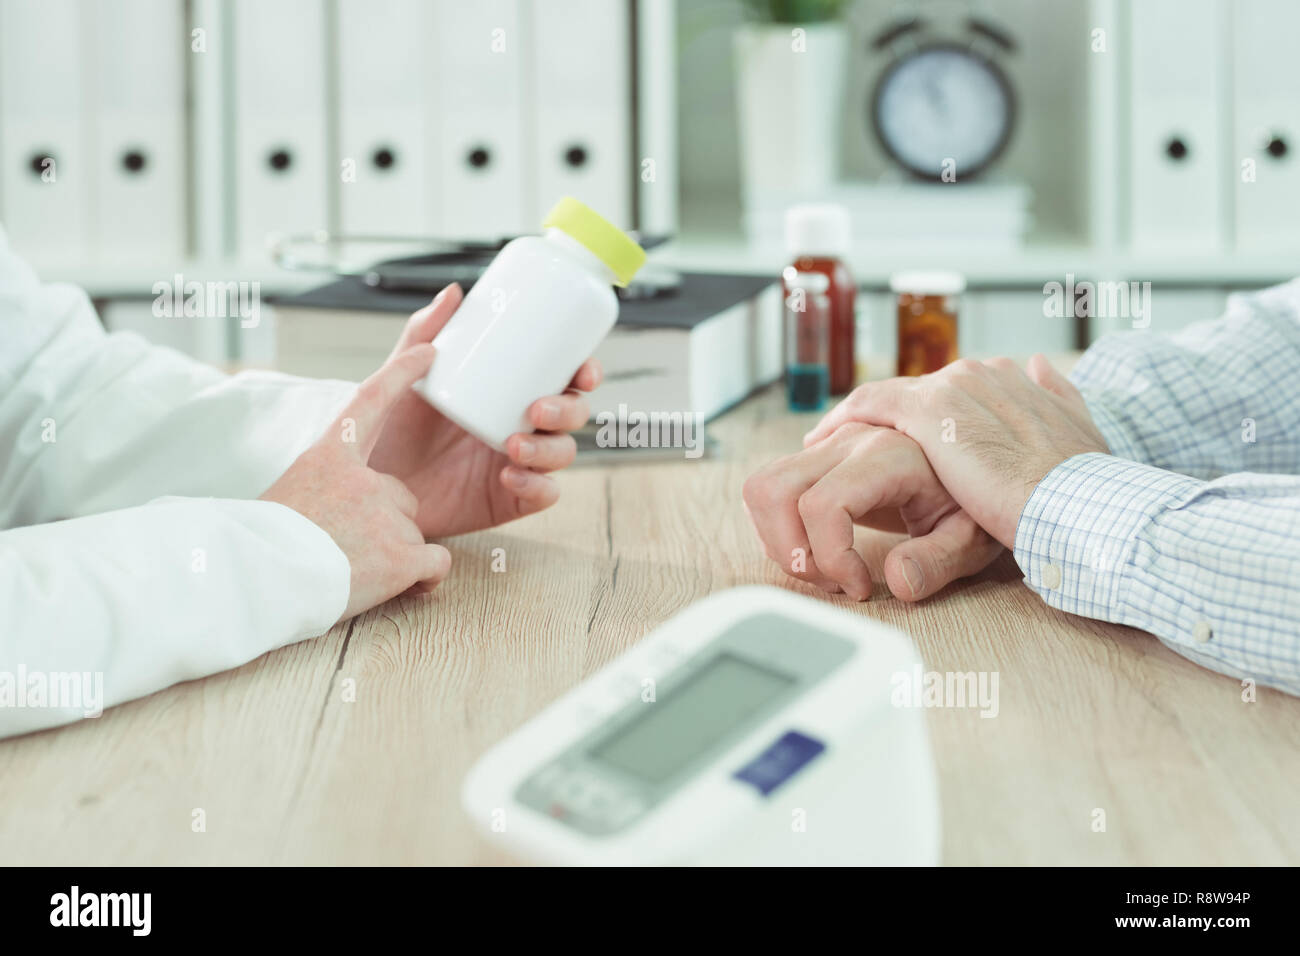 Doctor and patient considering nutritional supplement therapy in medical office - Stock Image